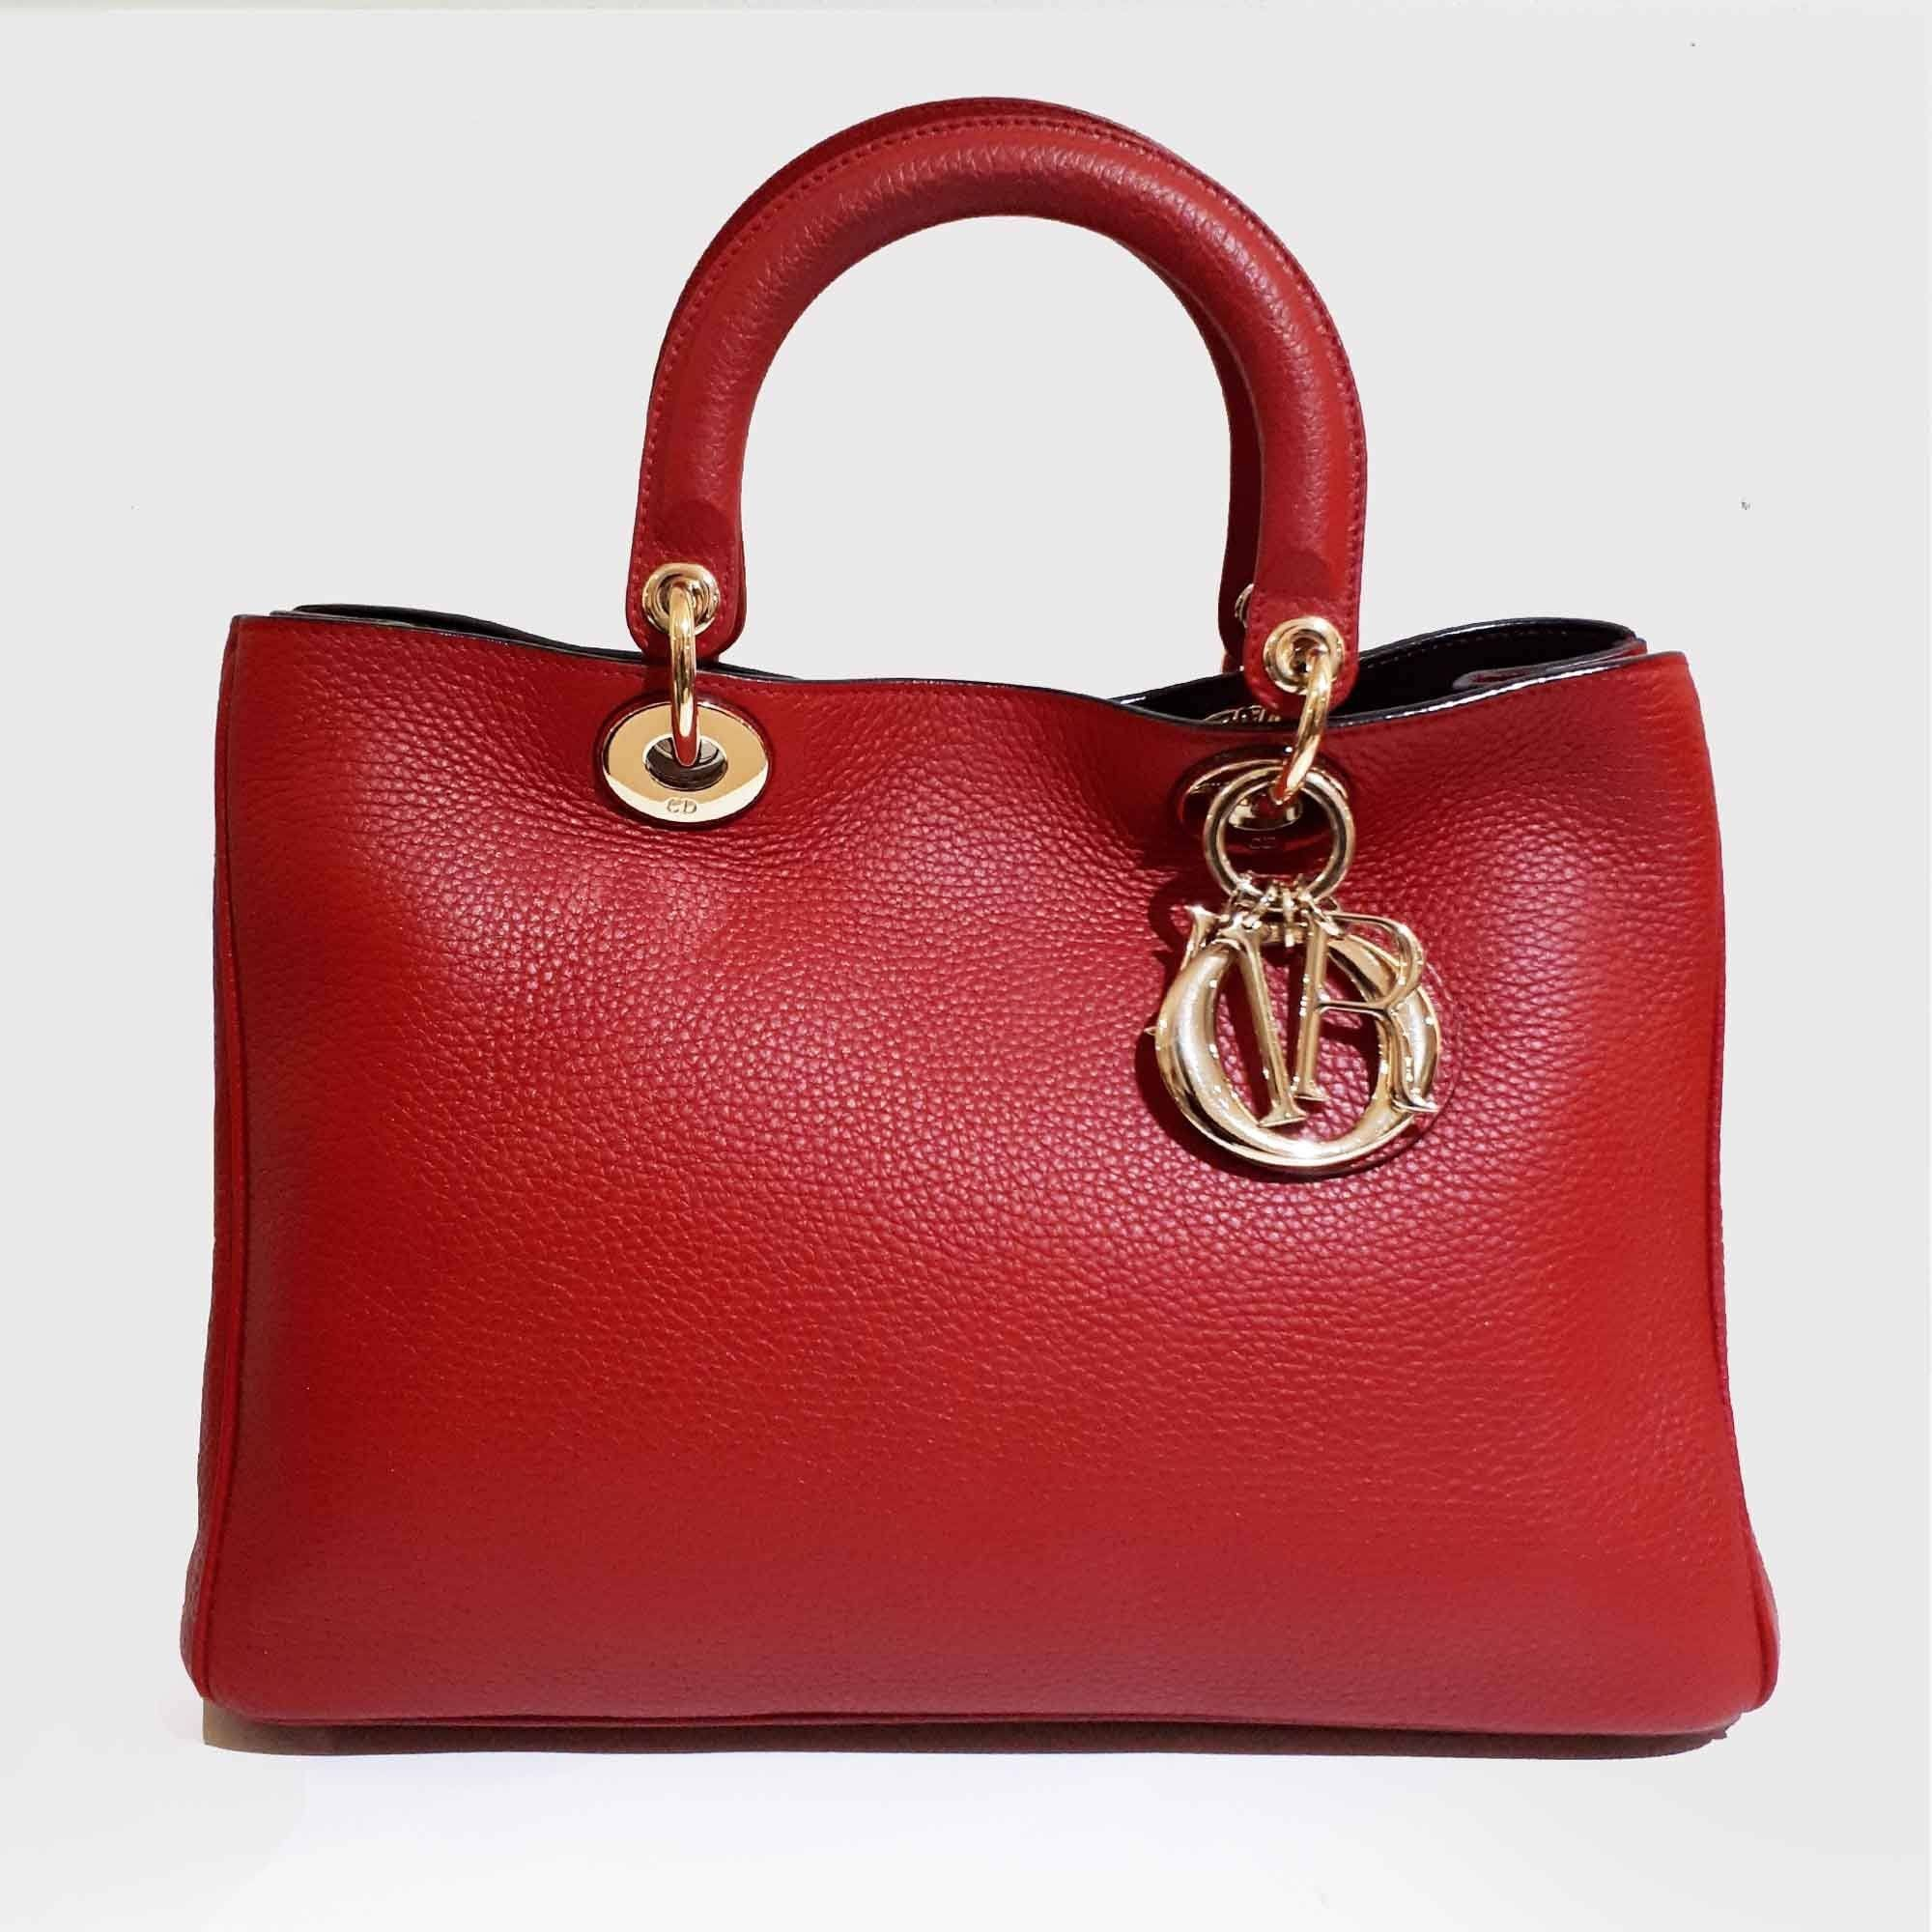 Christian Dior Red Medium Diorissimo Shopper Tote